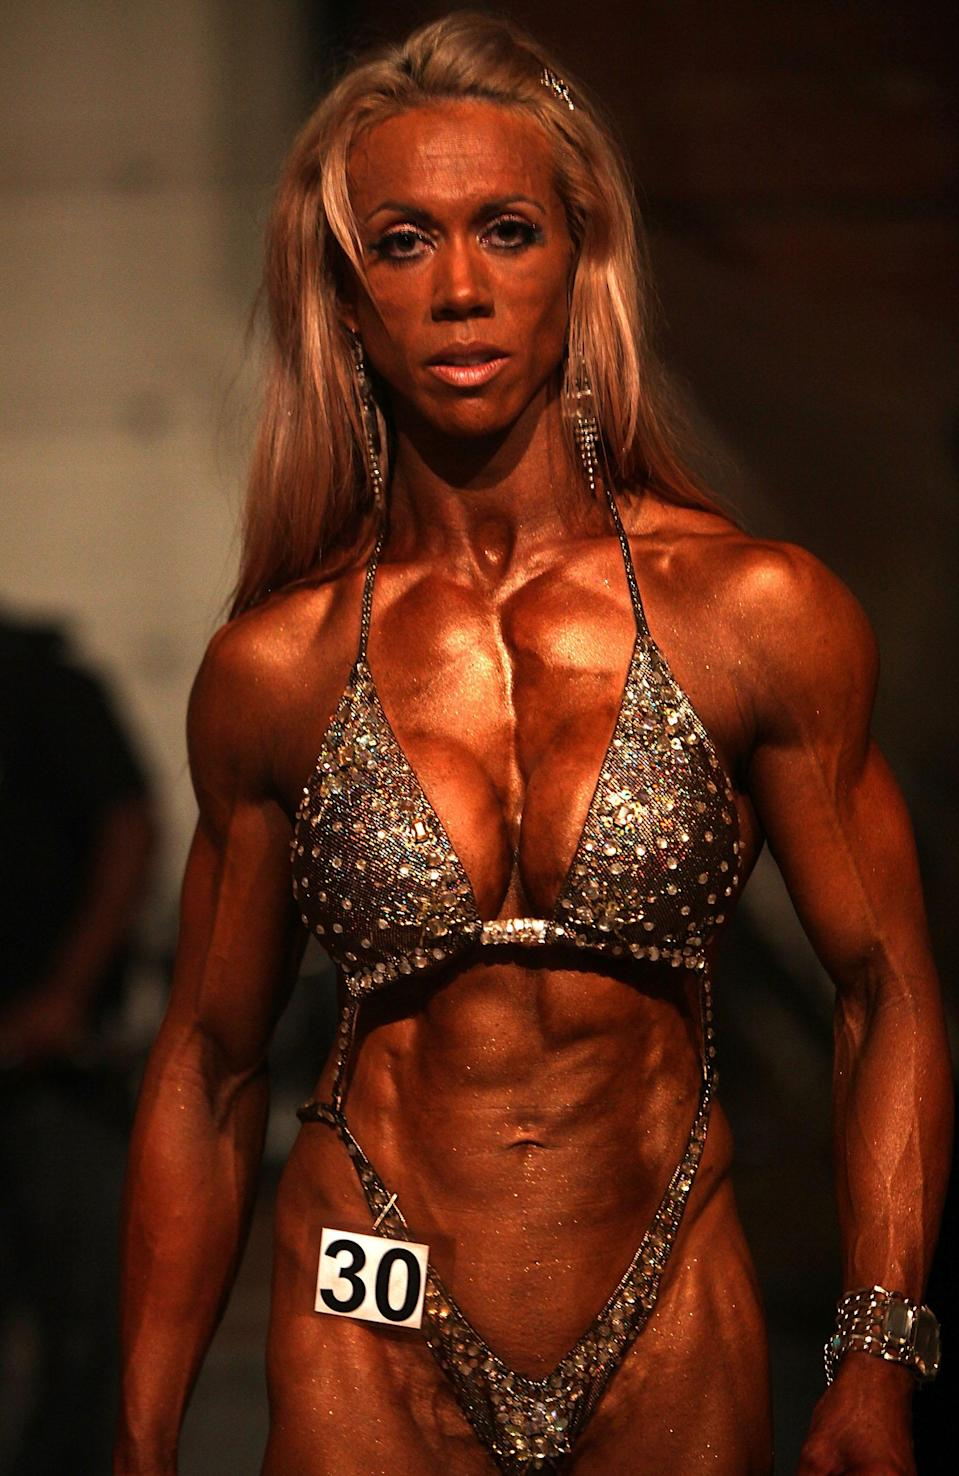 "<div class=""caption-credit""> Photo by: Christopher Furlong/Getty Images</div>Another bygone look from years past: bleached blonde hair. ""A lot more of us used to be platinum,"" says Howlett. ""My hair was falling out in clumps from all the chemicals."" Now brunettes are having a moment in bodybuilding, thanks in part to the competition's popularity in countries outside the U.S. <br>"